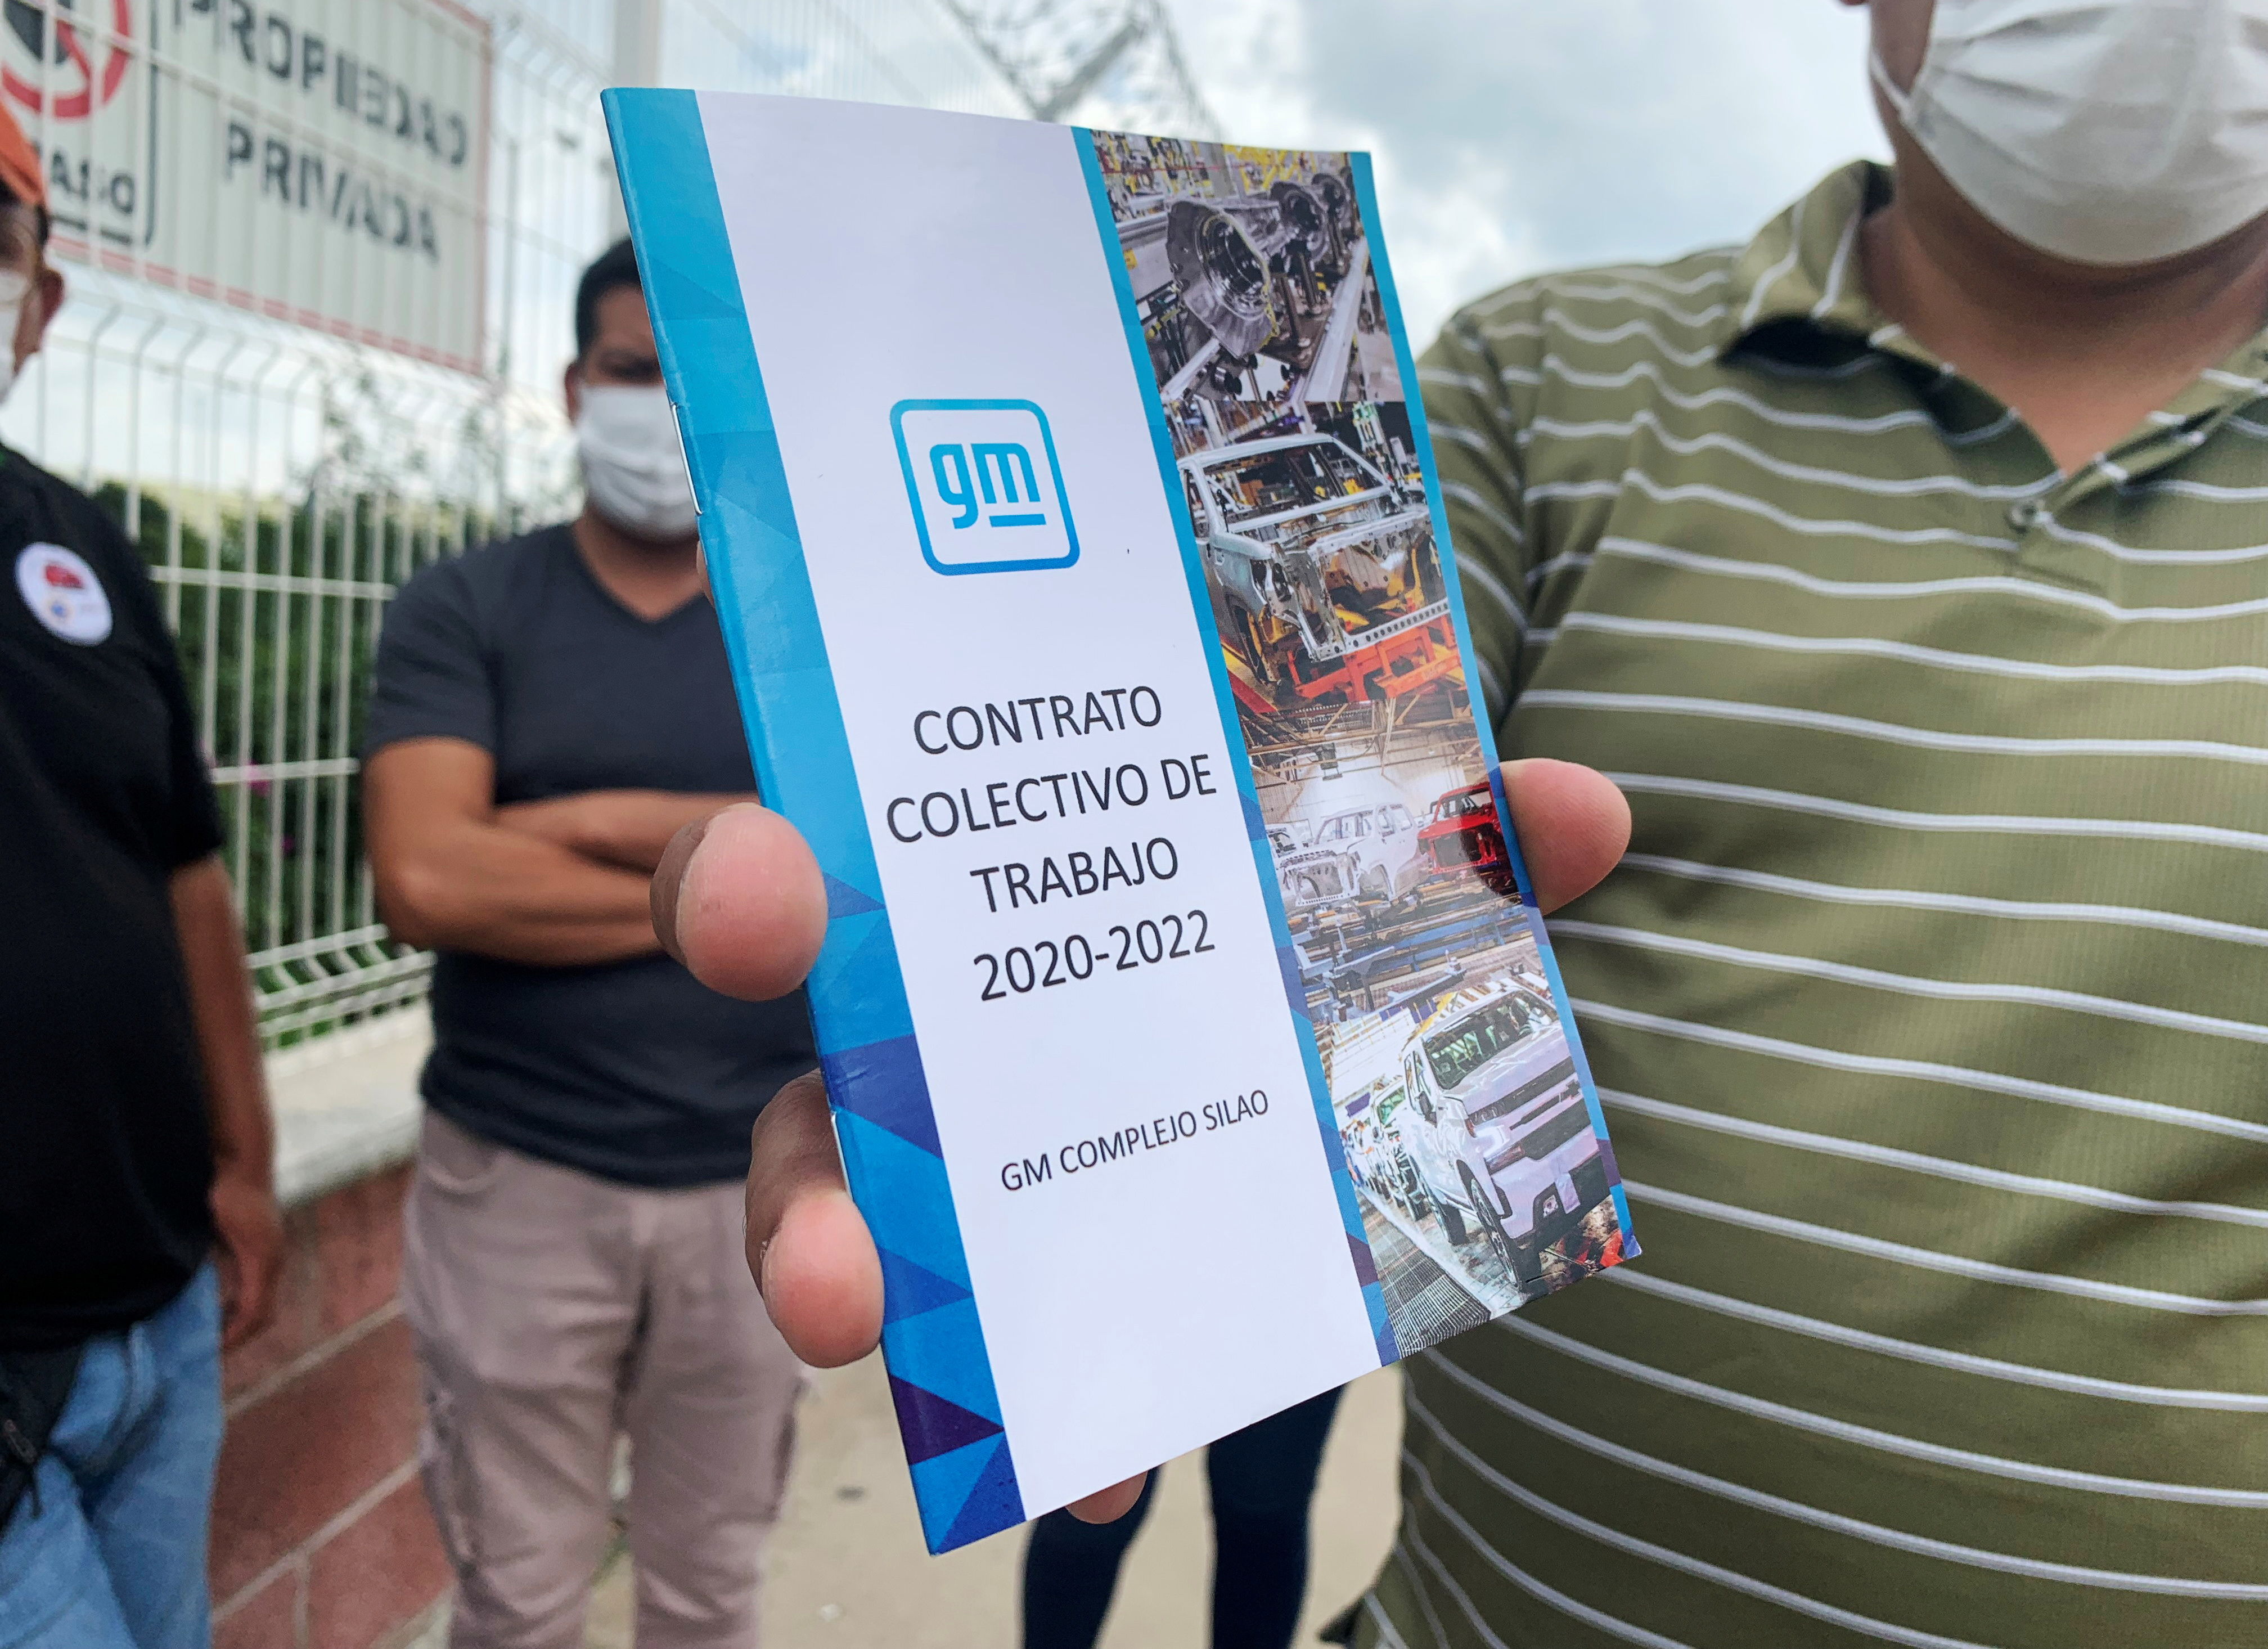 A worker of the General Motors Silao plant holds a copy of the collective contract he and his colleagues will vote to keep or reject, with repercussions under the new USMCA trade agreement, in Silao, Mexico August 13, 2021. REUTERS/Daina Solomon